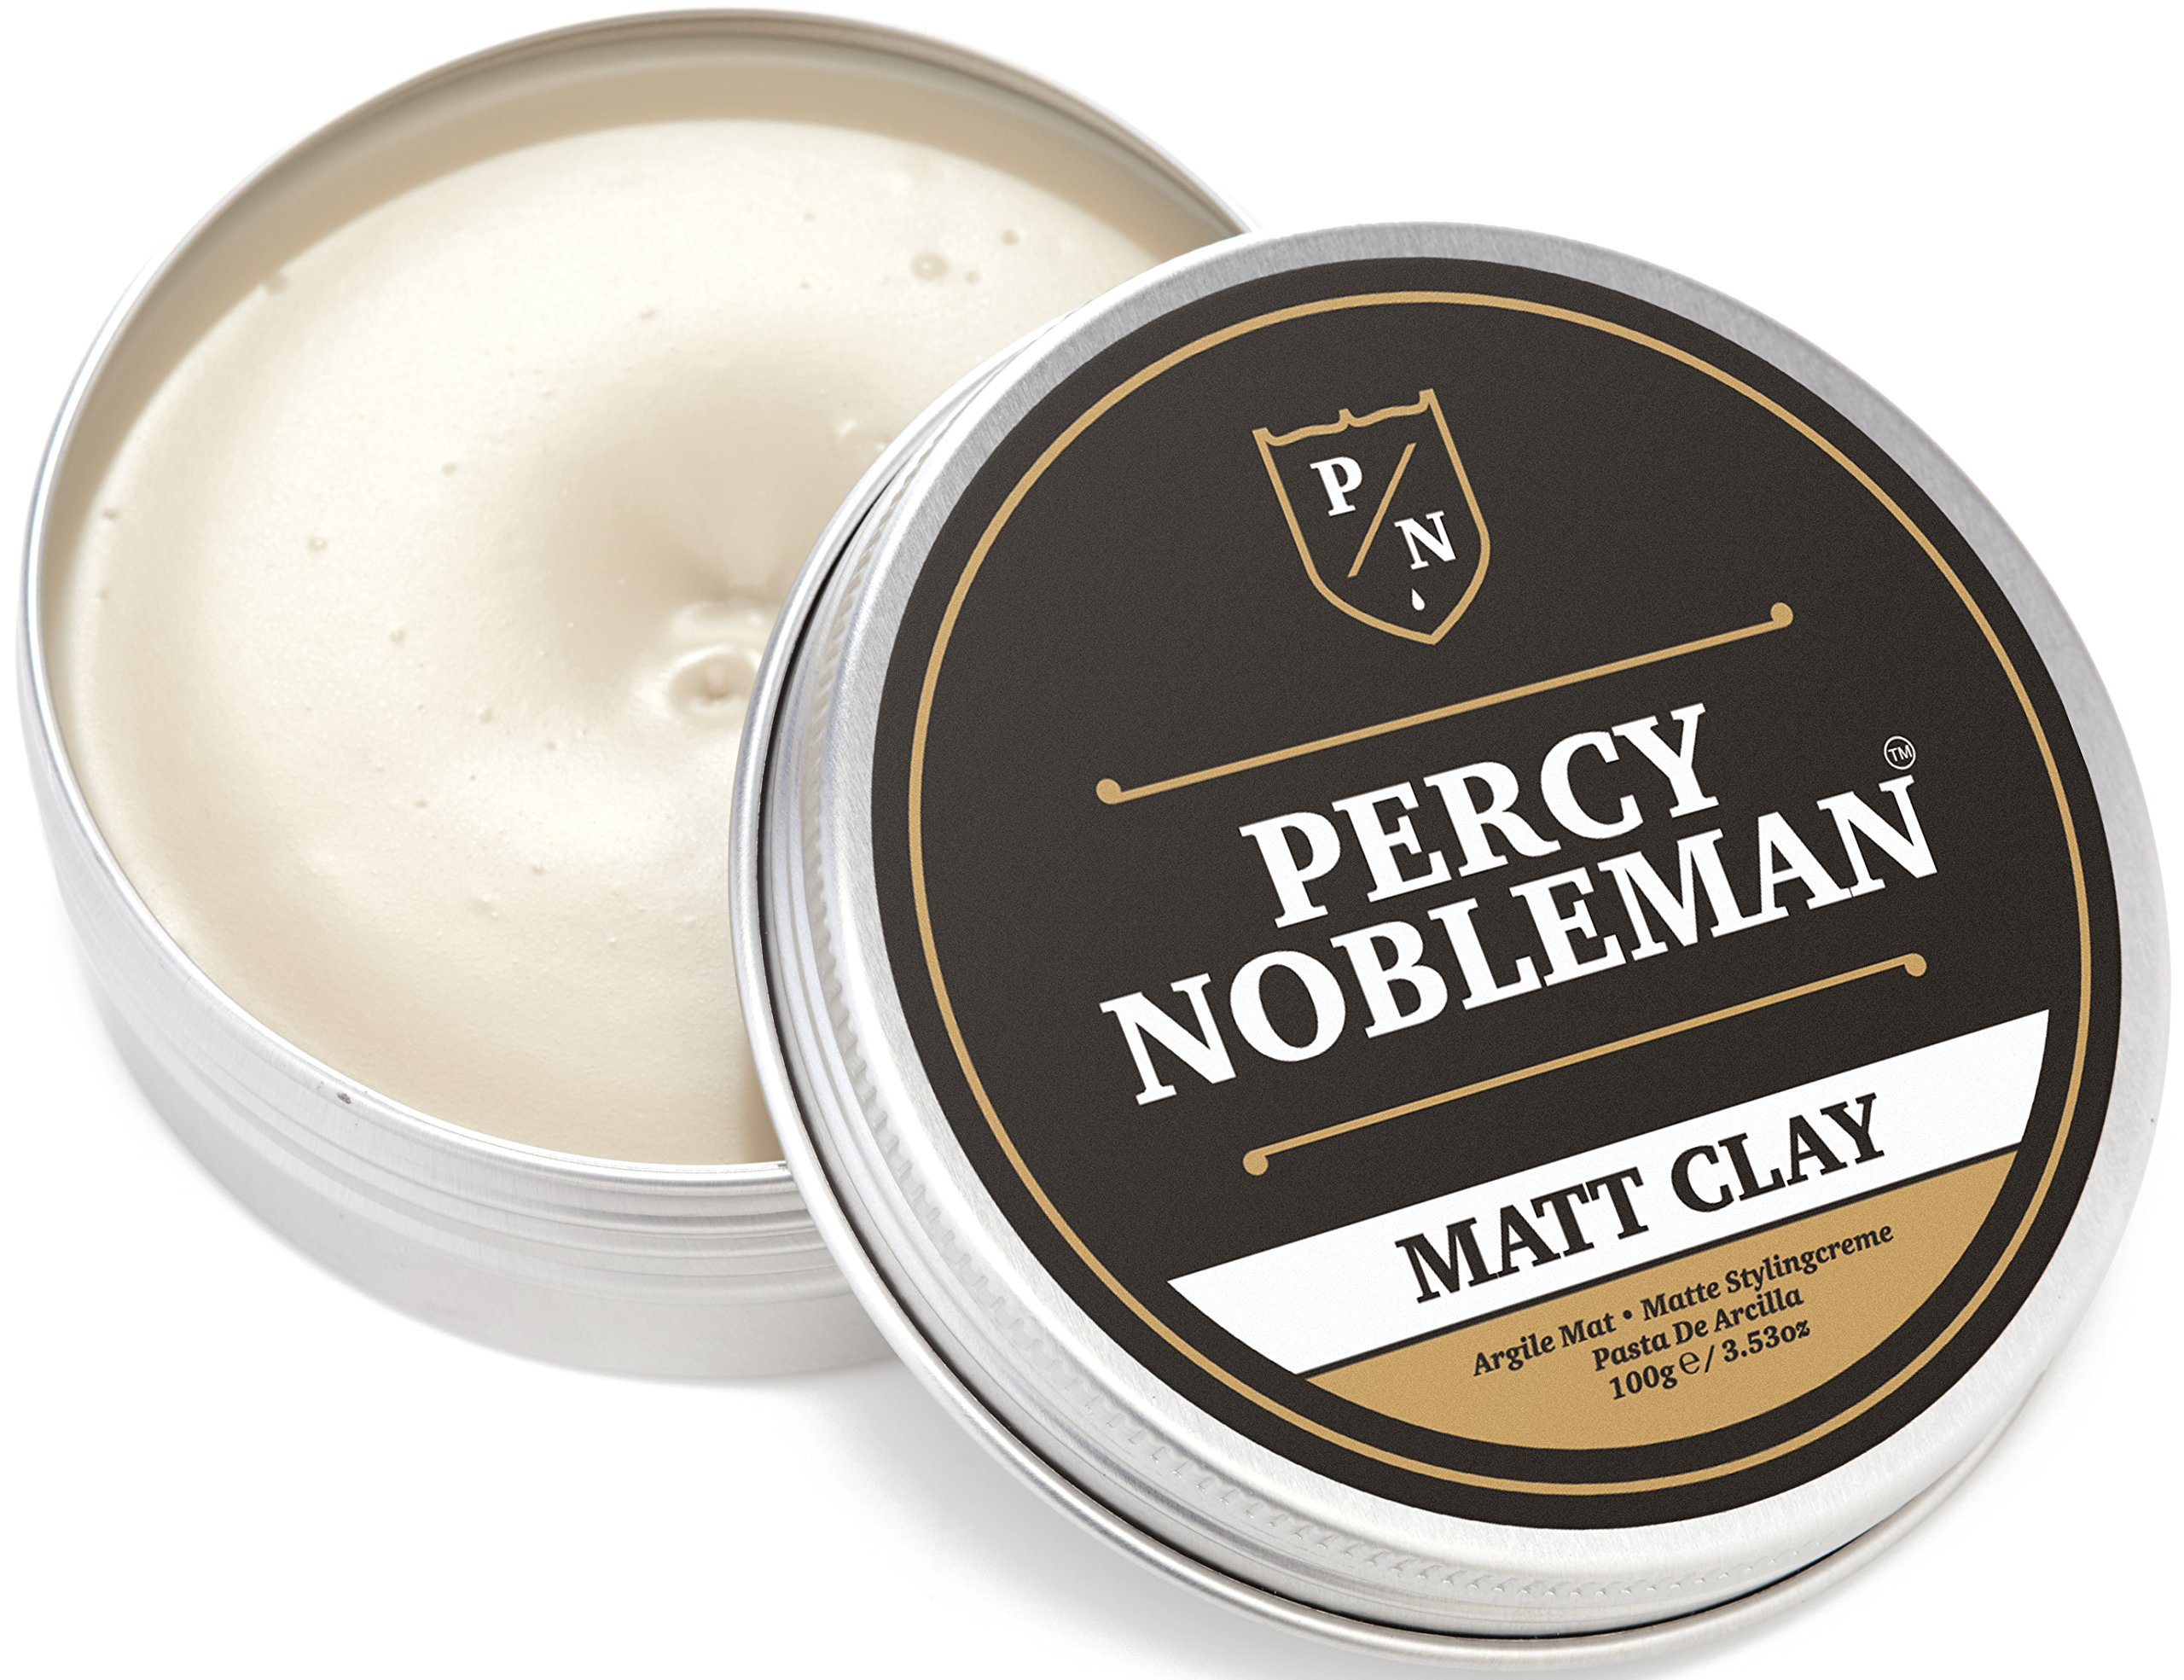 Matte Clay By Percy Nobleman, A Hair Clay For Men, 3.38oz by Percy Nobleman (Image #2)